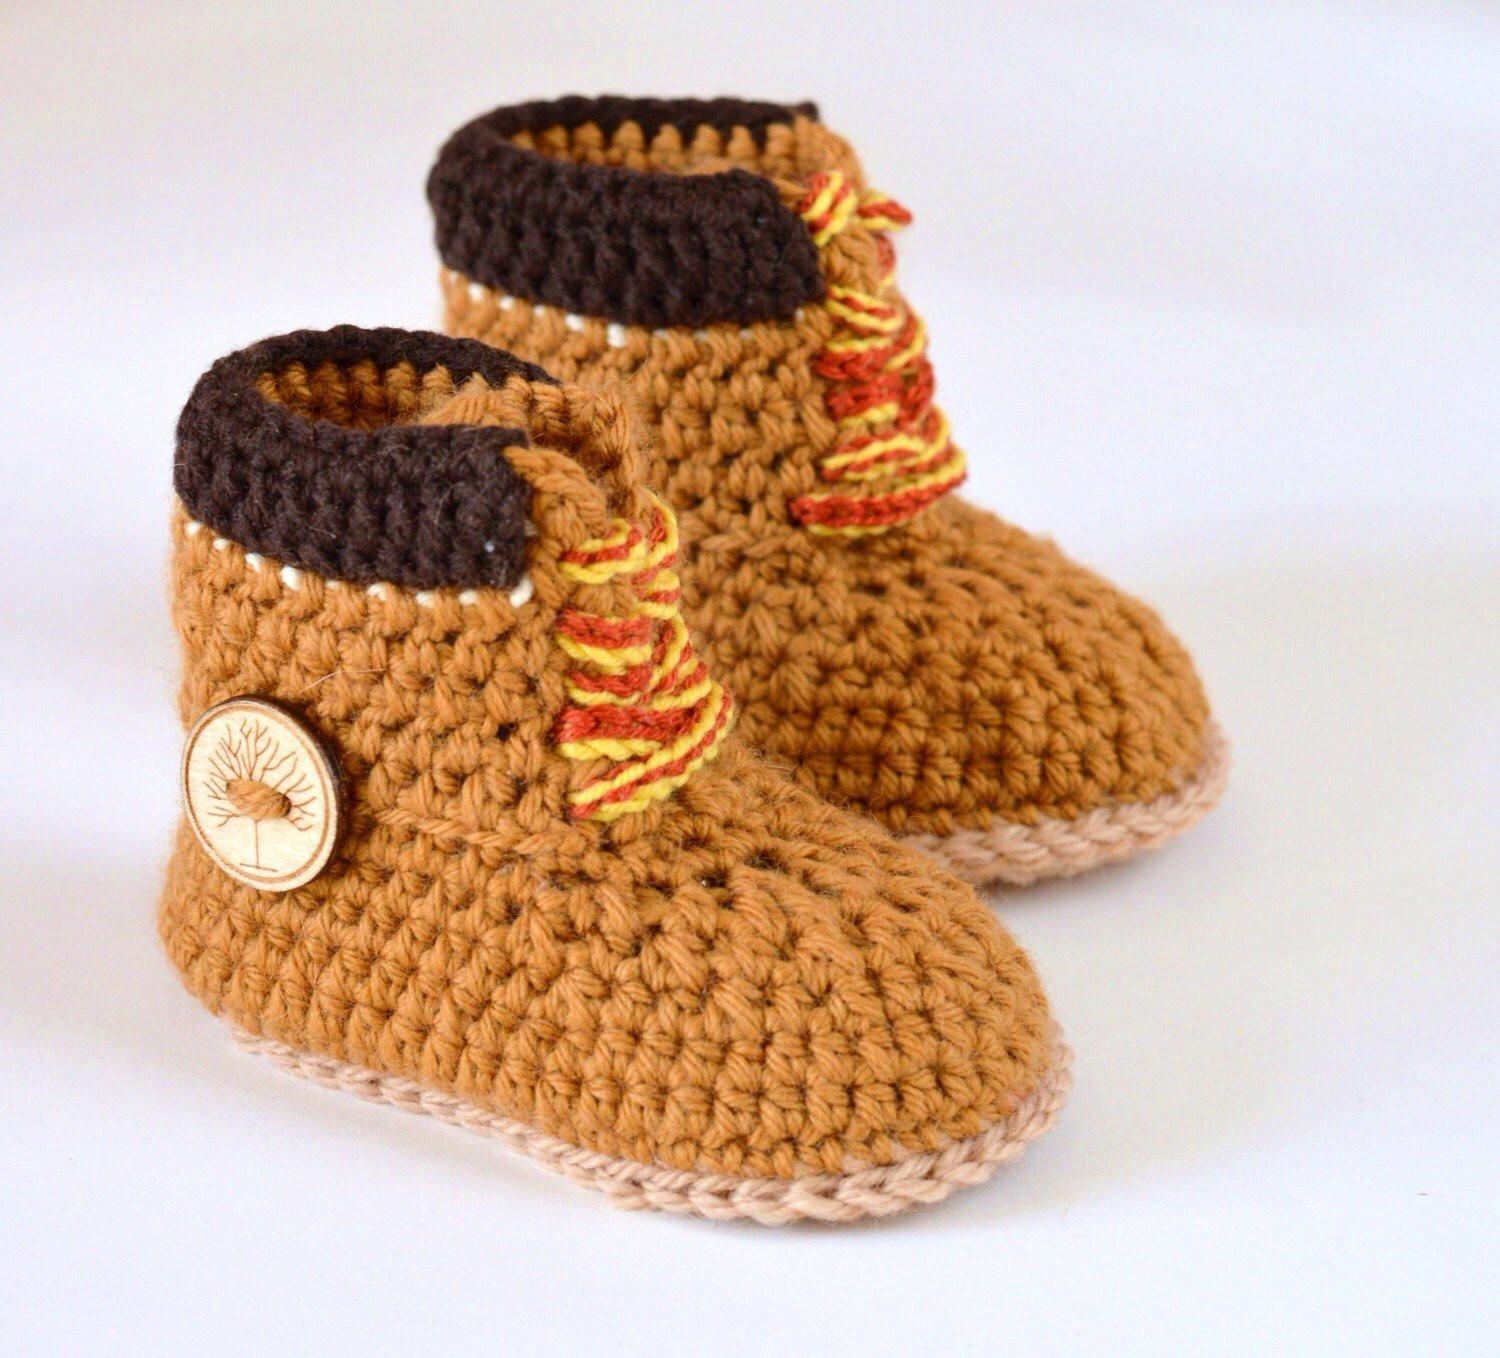 Baby Boy Crochet Patterns Luxury the Gallery for Baby Boy Crochet Booties Of Awesome 41 Models Baby Boy Crochet Patterns